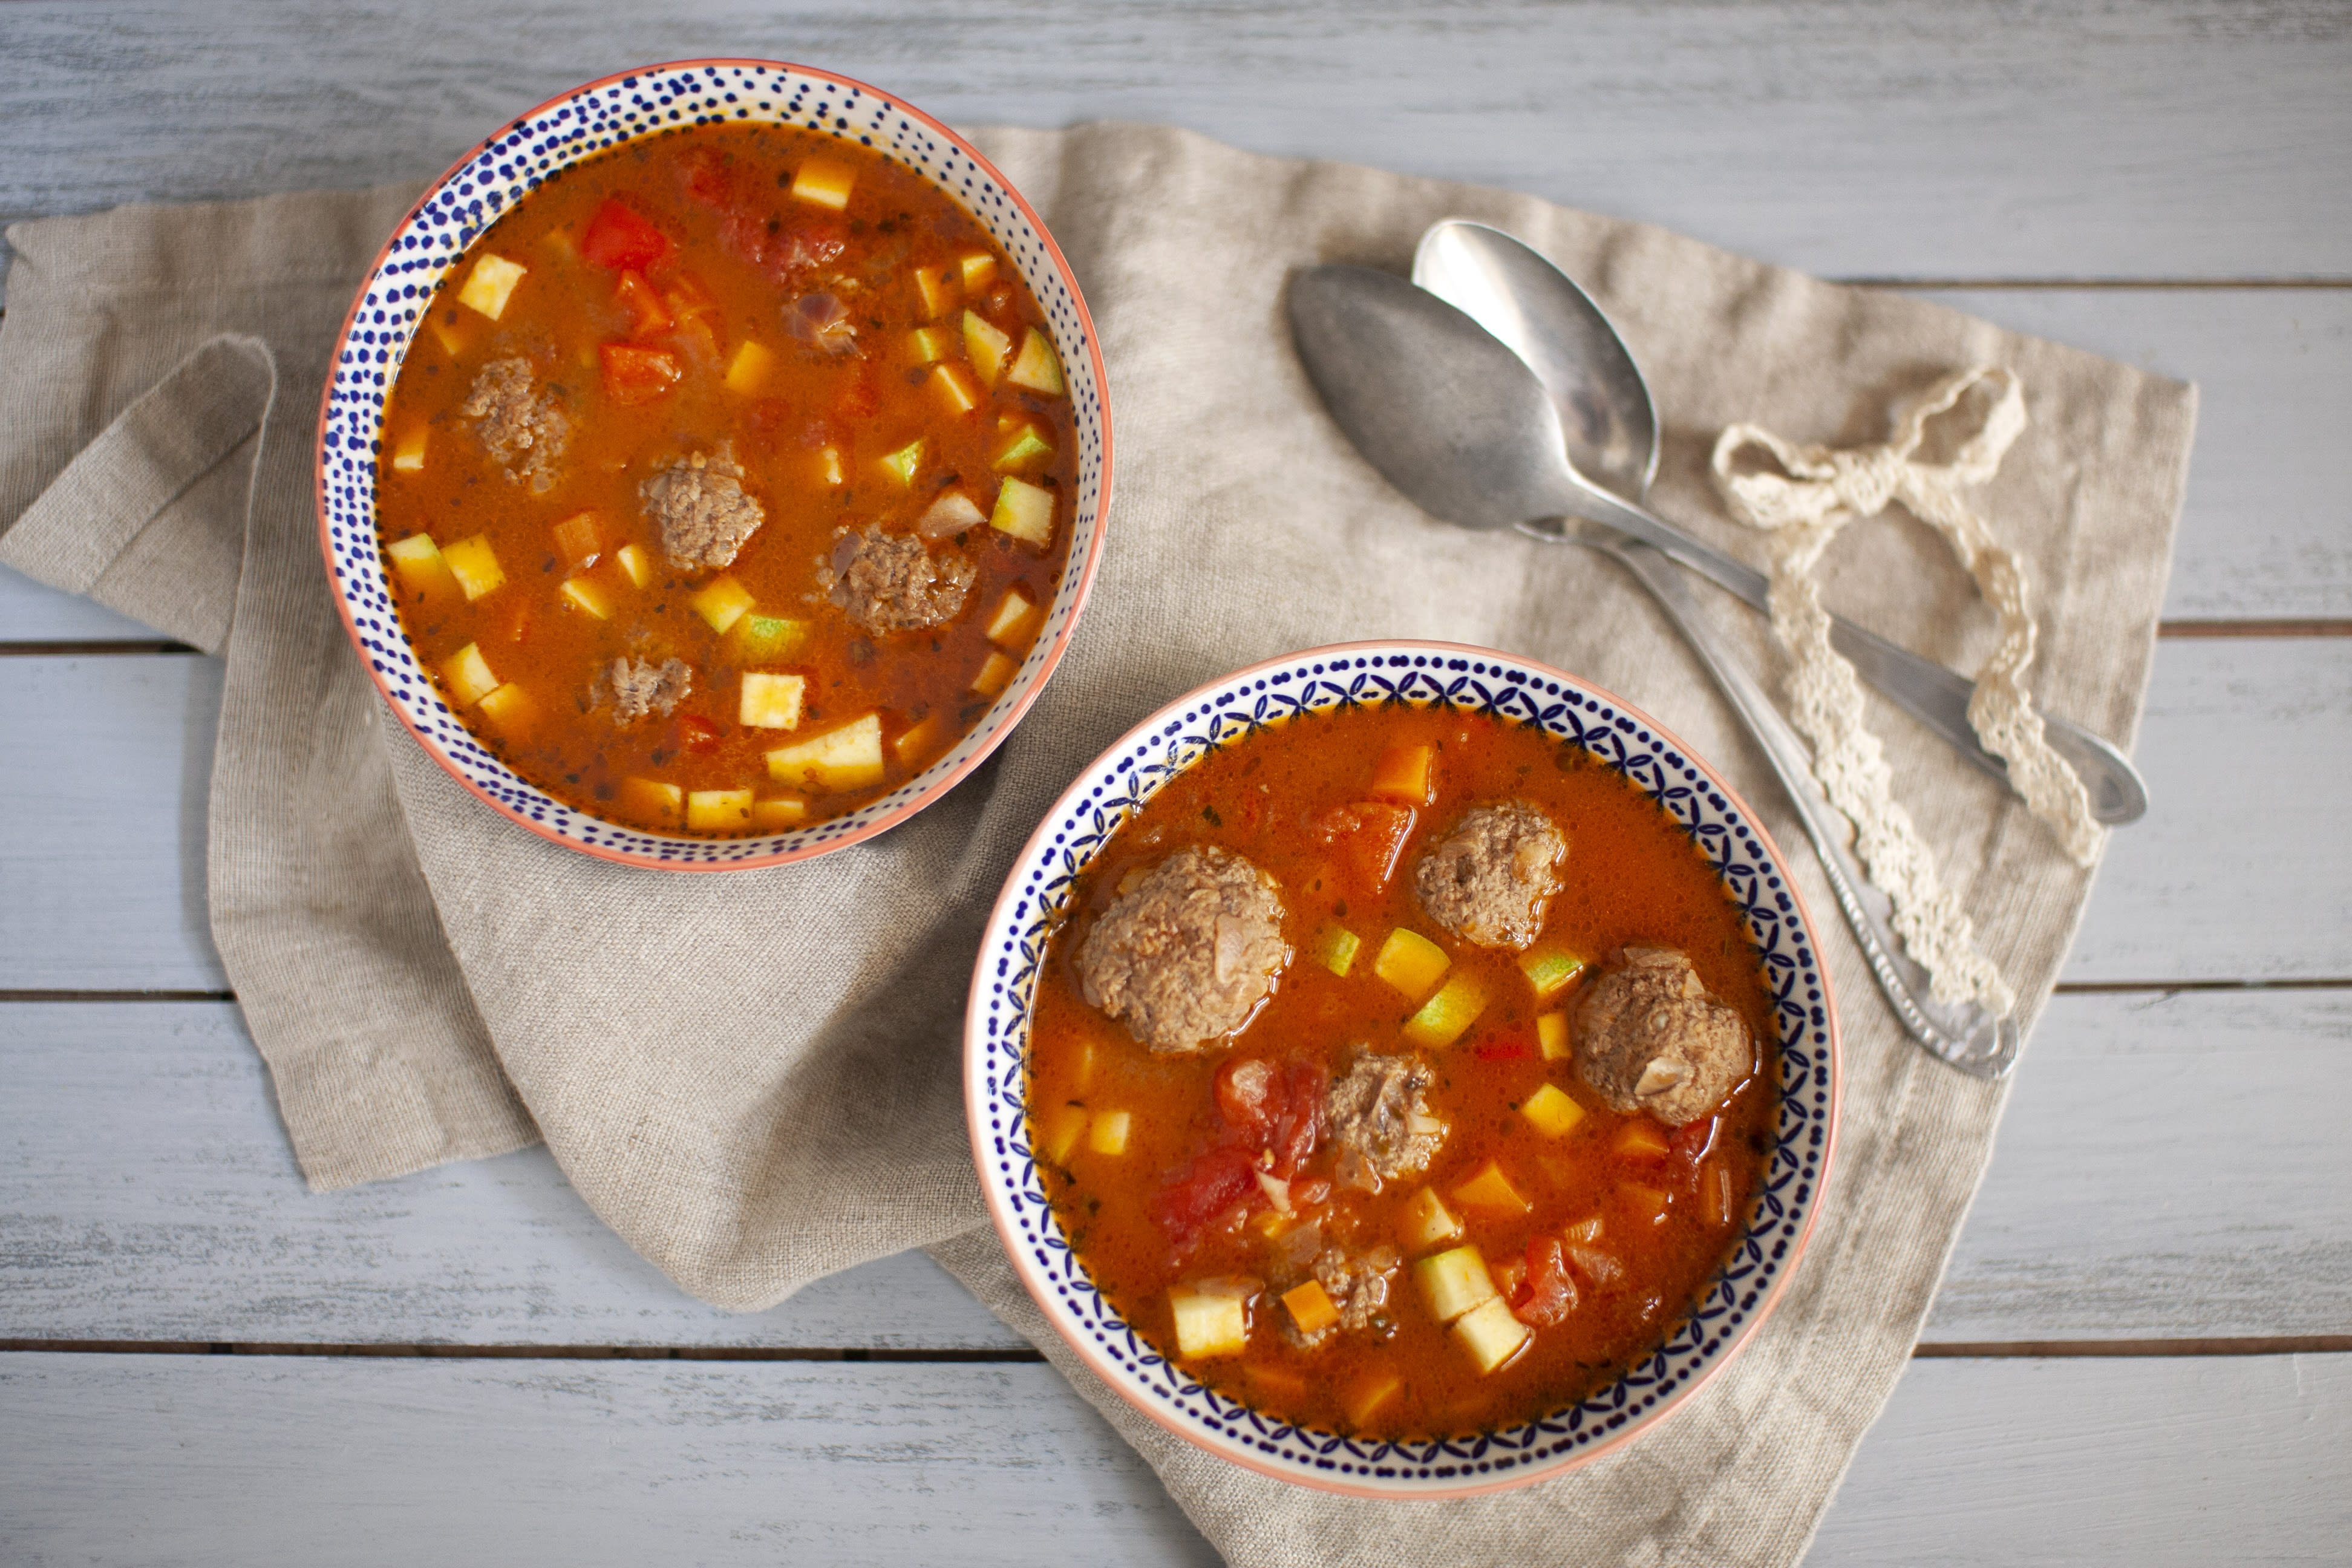 Homemade Meatballs in Hearty Vegetable Soup